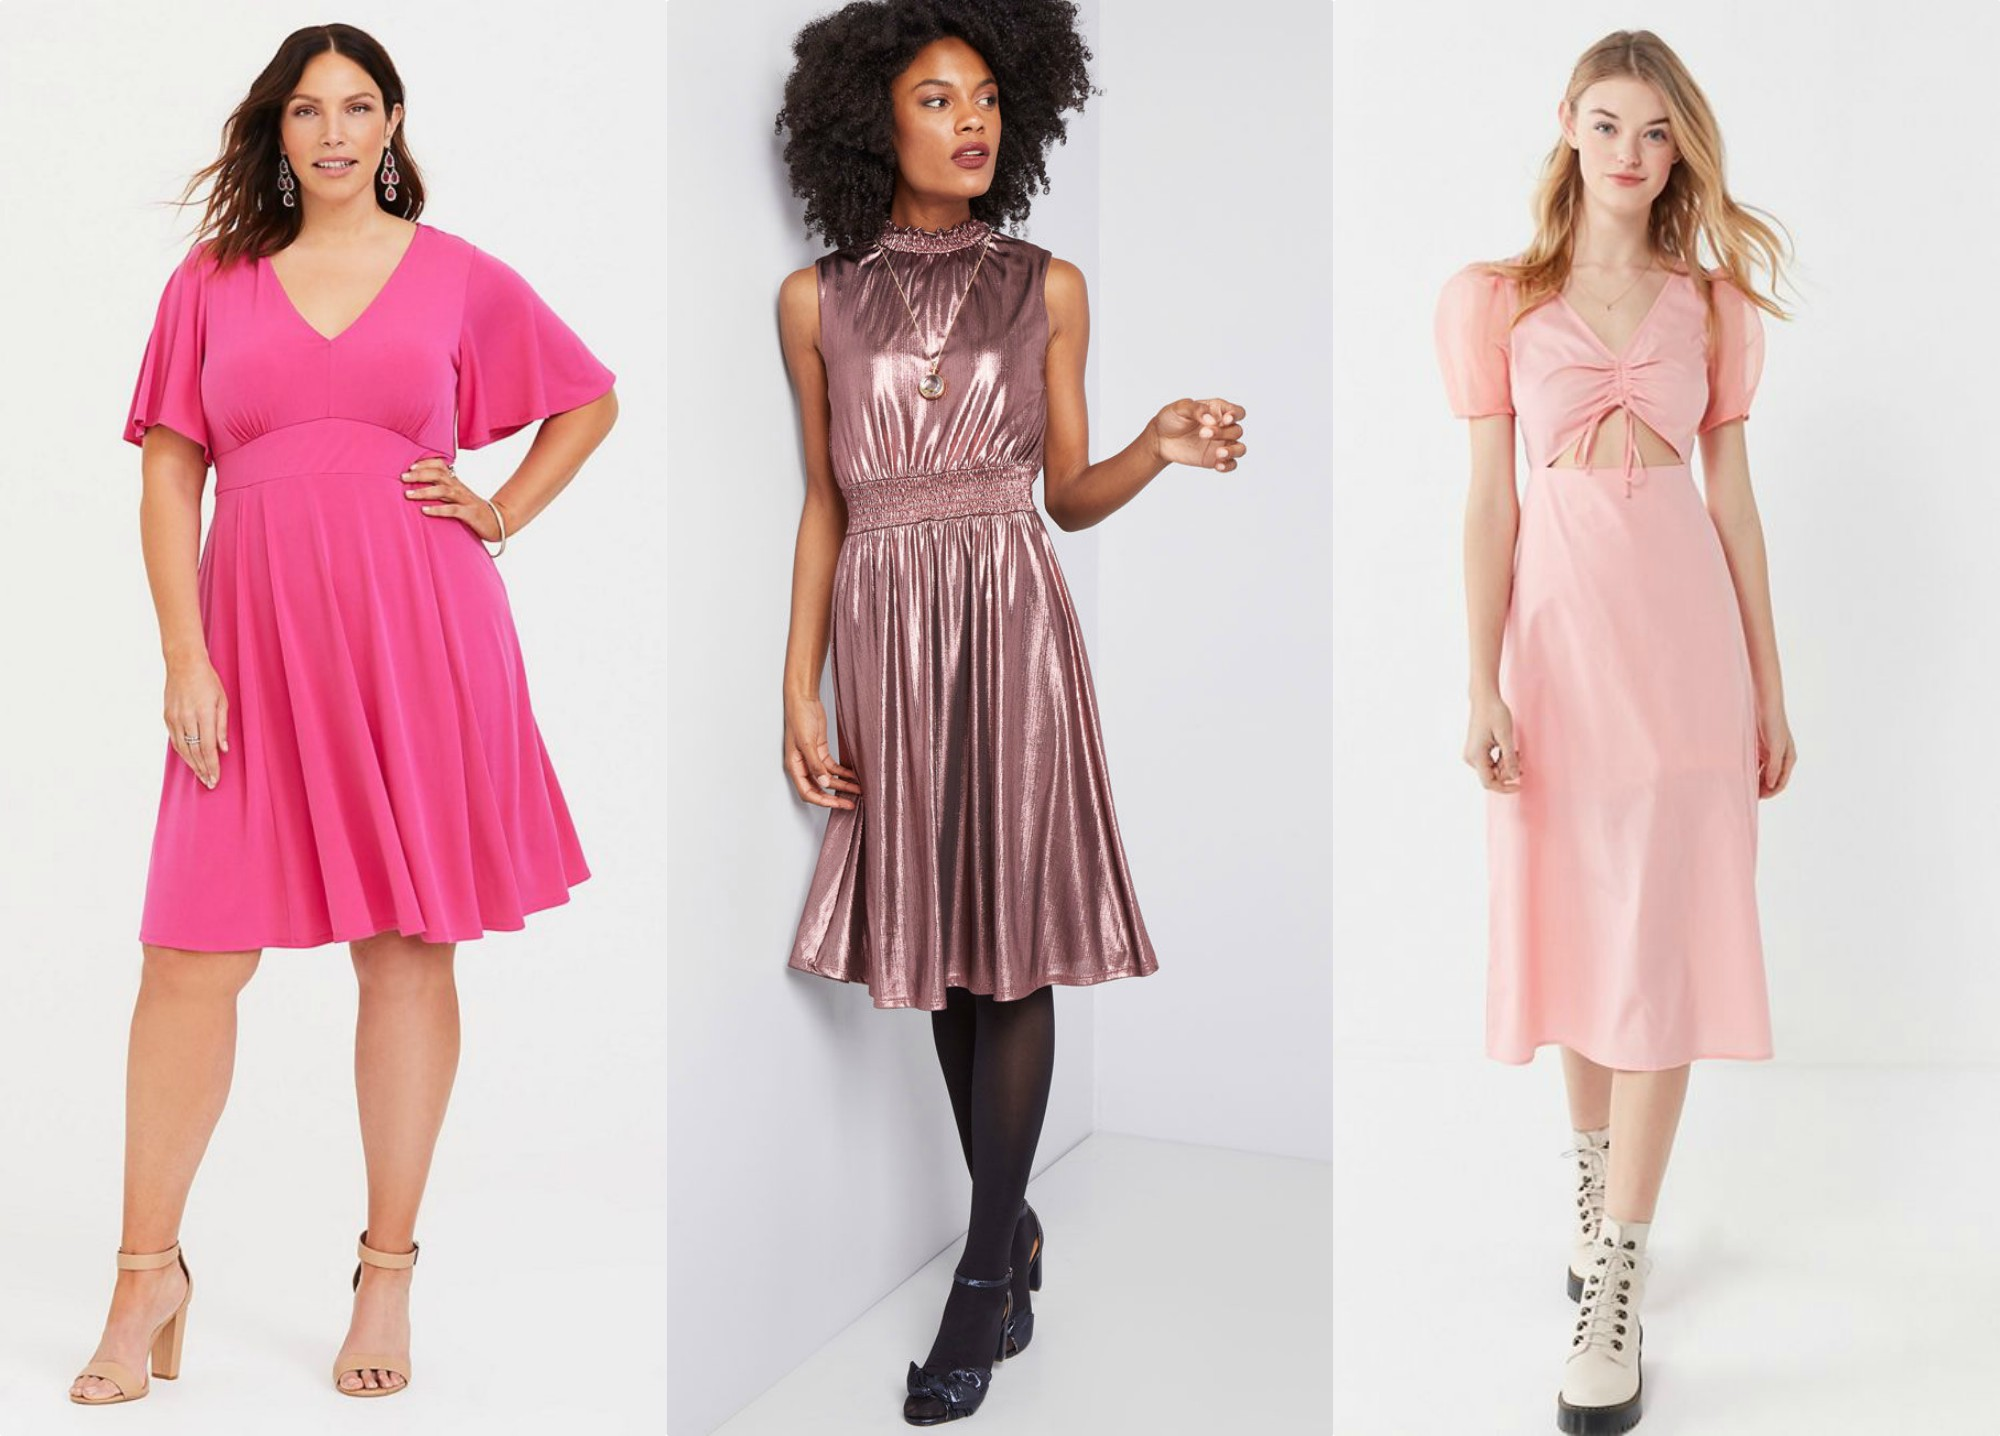 20 Valentine's Day dresses to slay the night in, whether you're boo'd up or single af